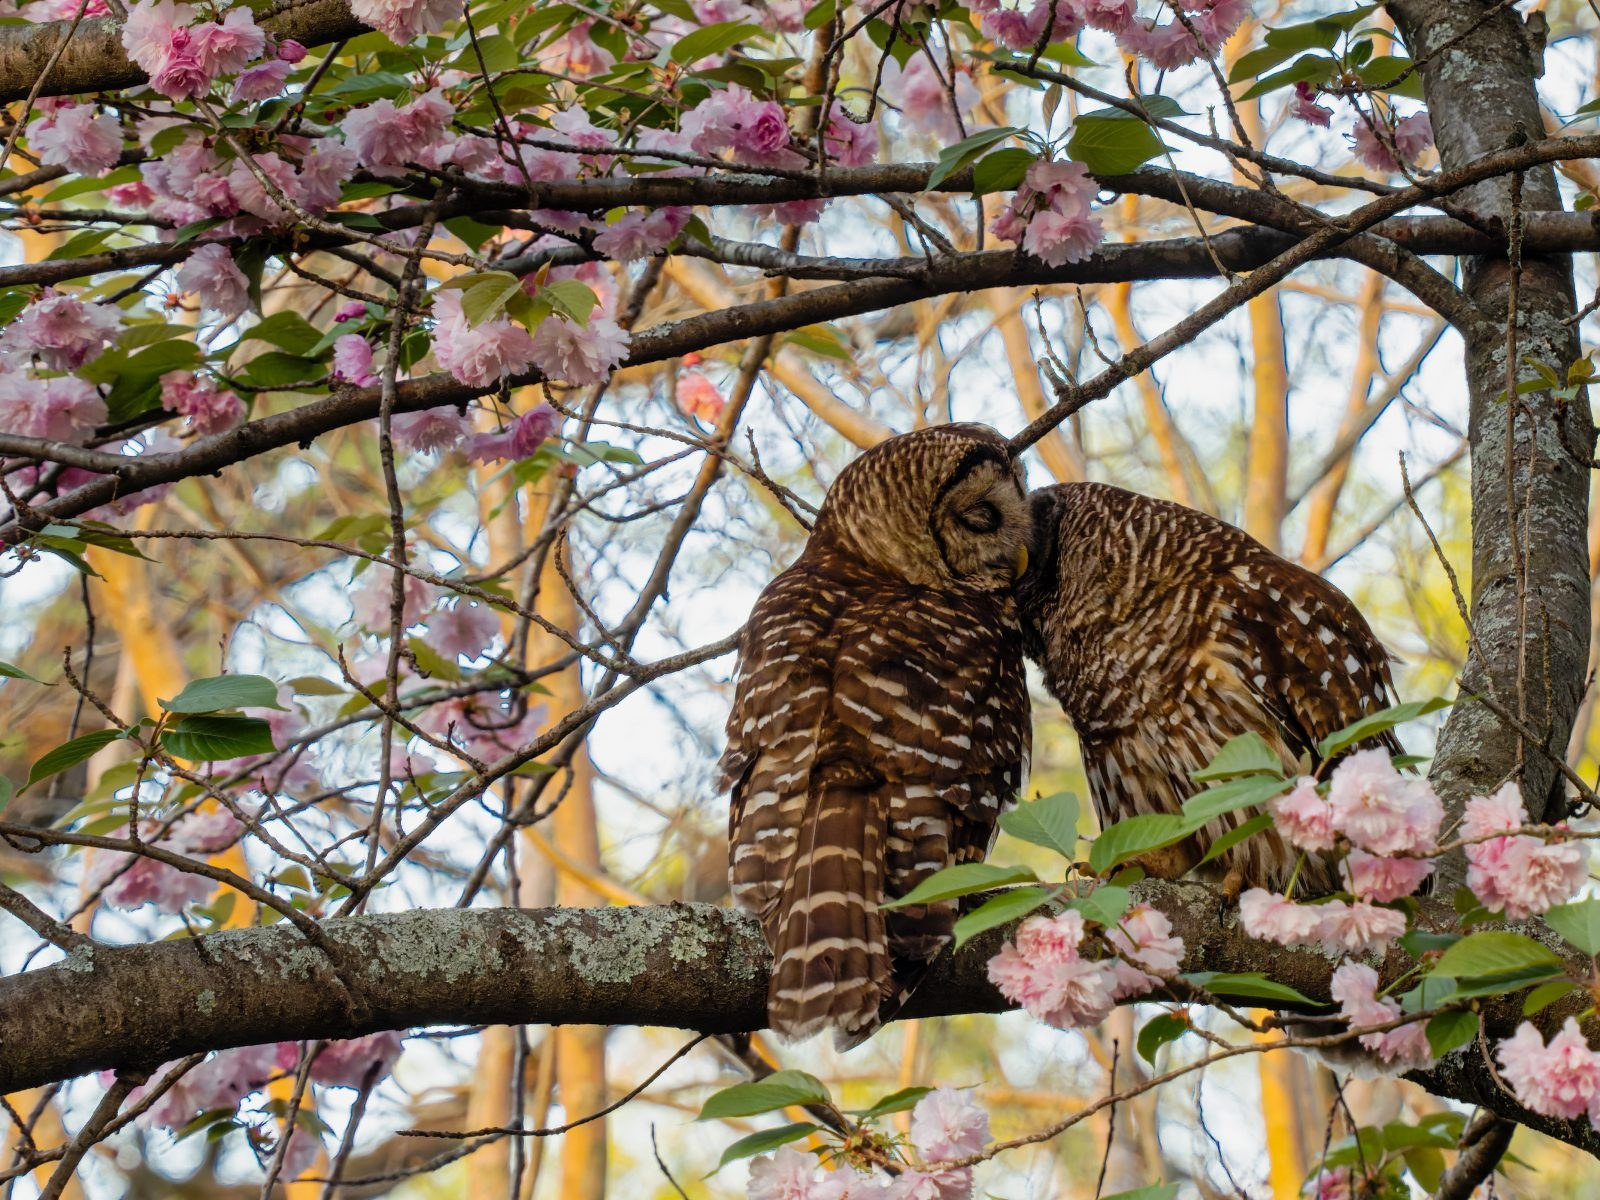 Barred Owls by Steve Rushing